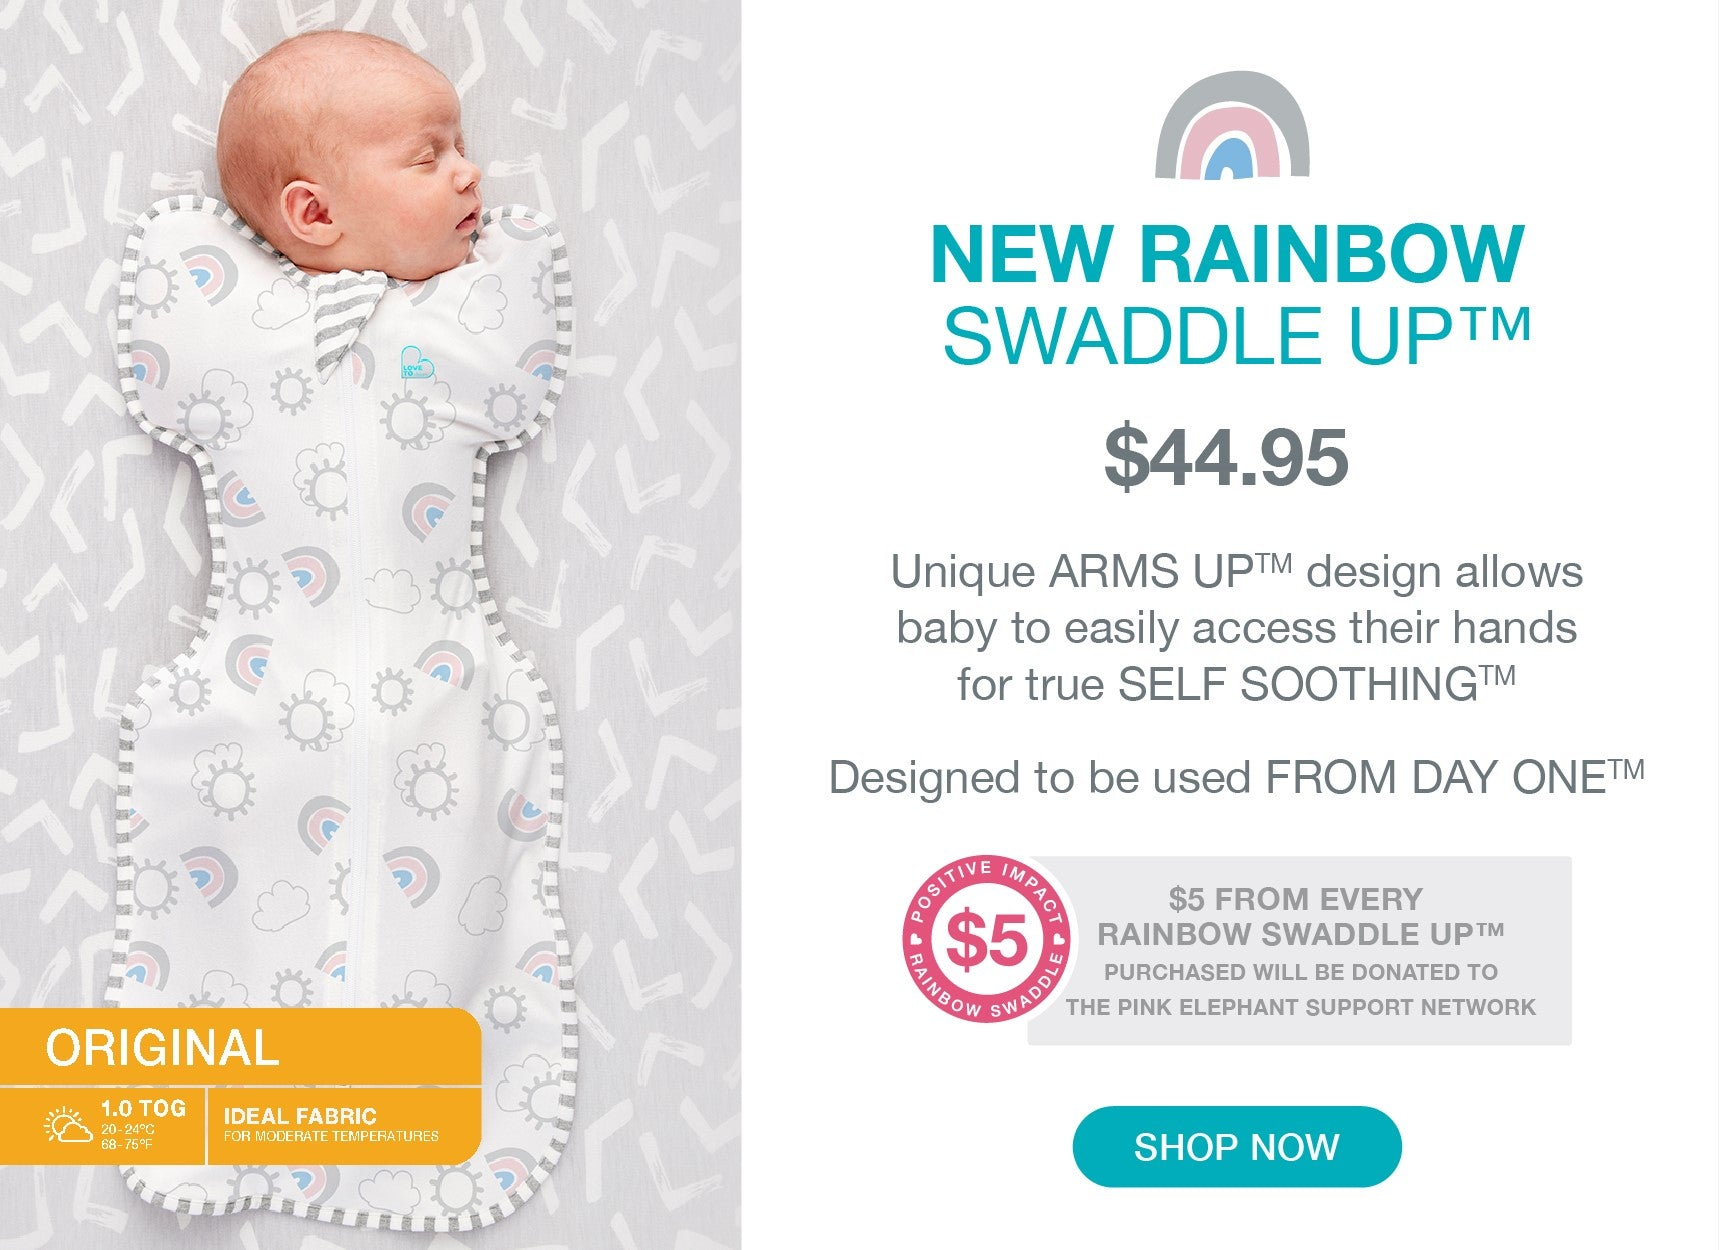 Swaddle up Original Rainbow LE